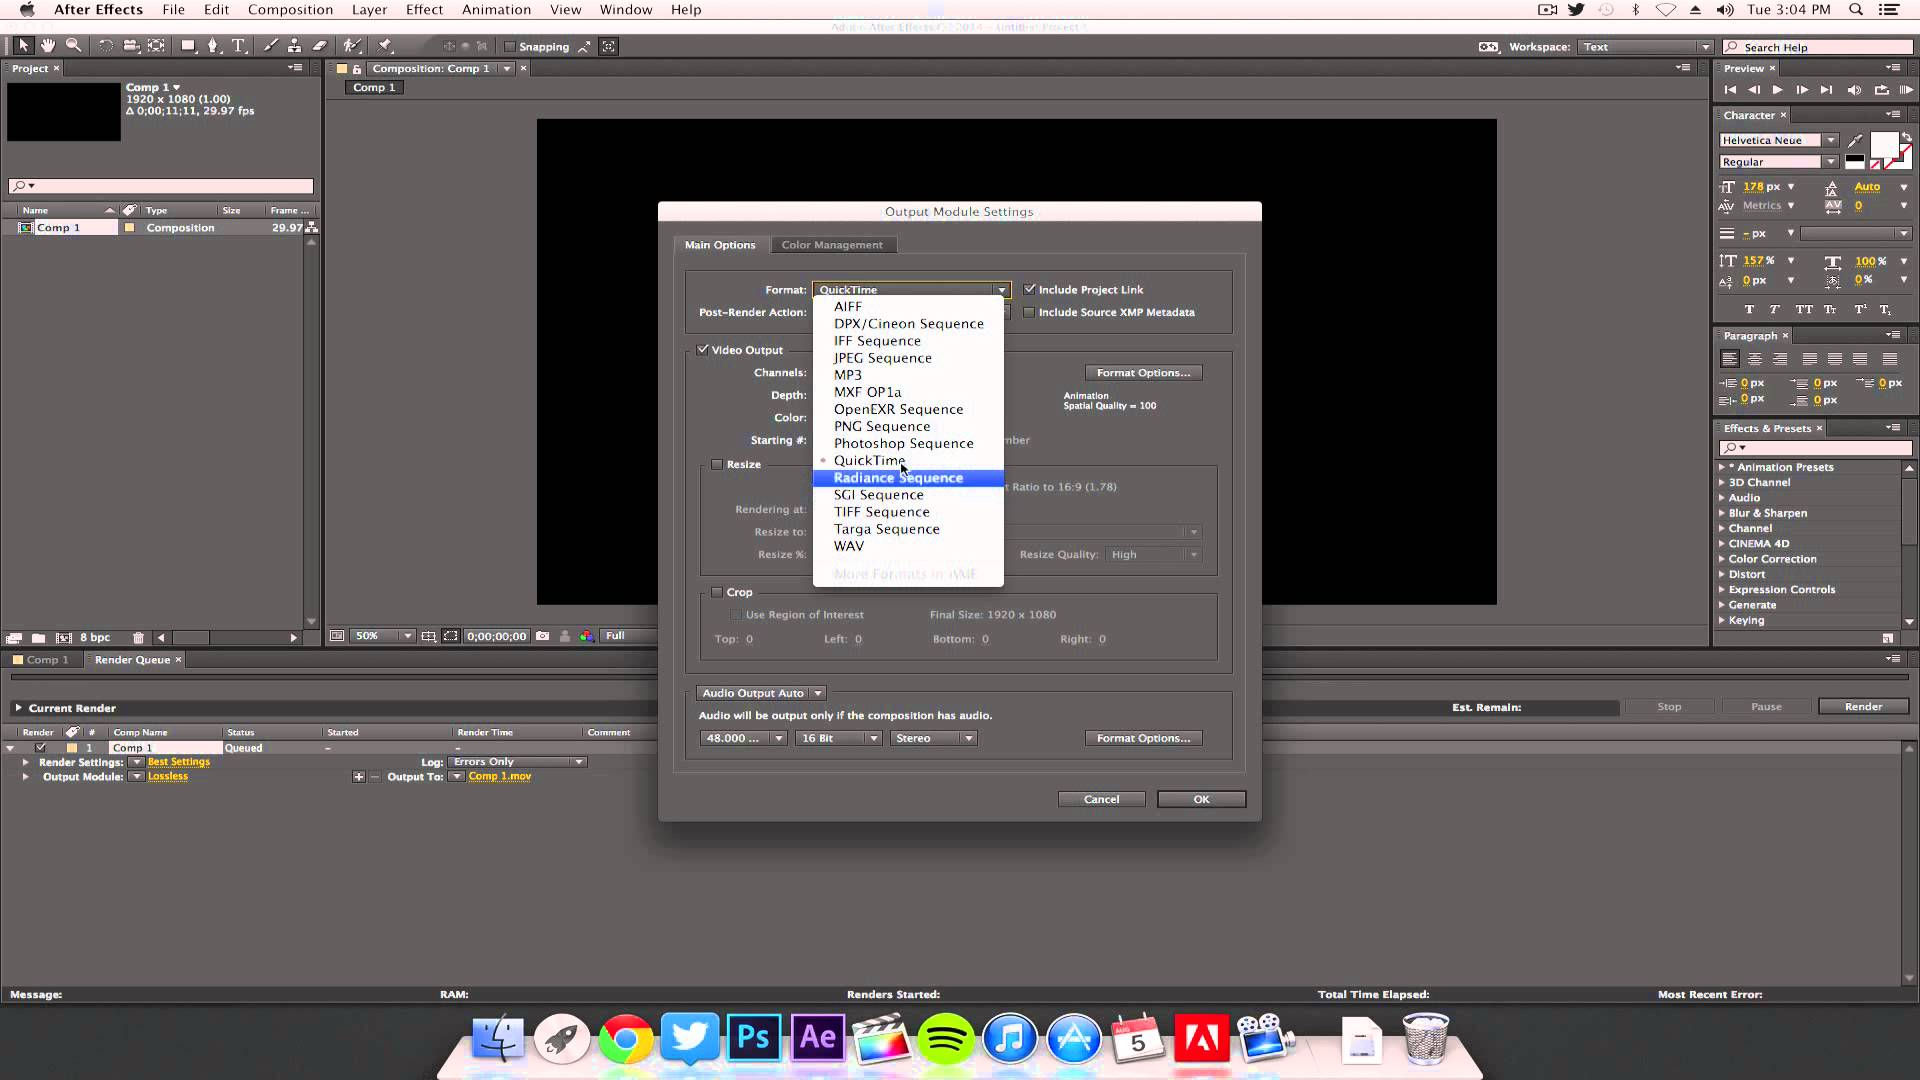 Adobe after effects cc 2015 v13 5 + crack free download | Download